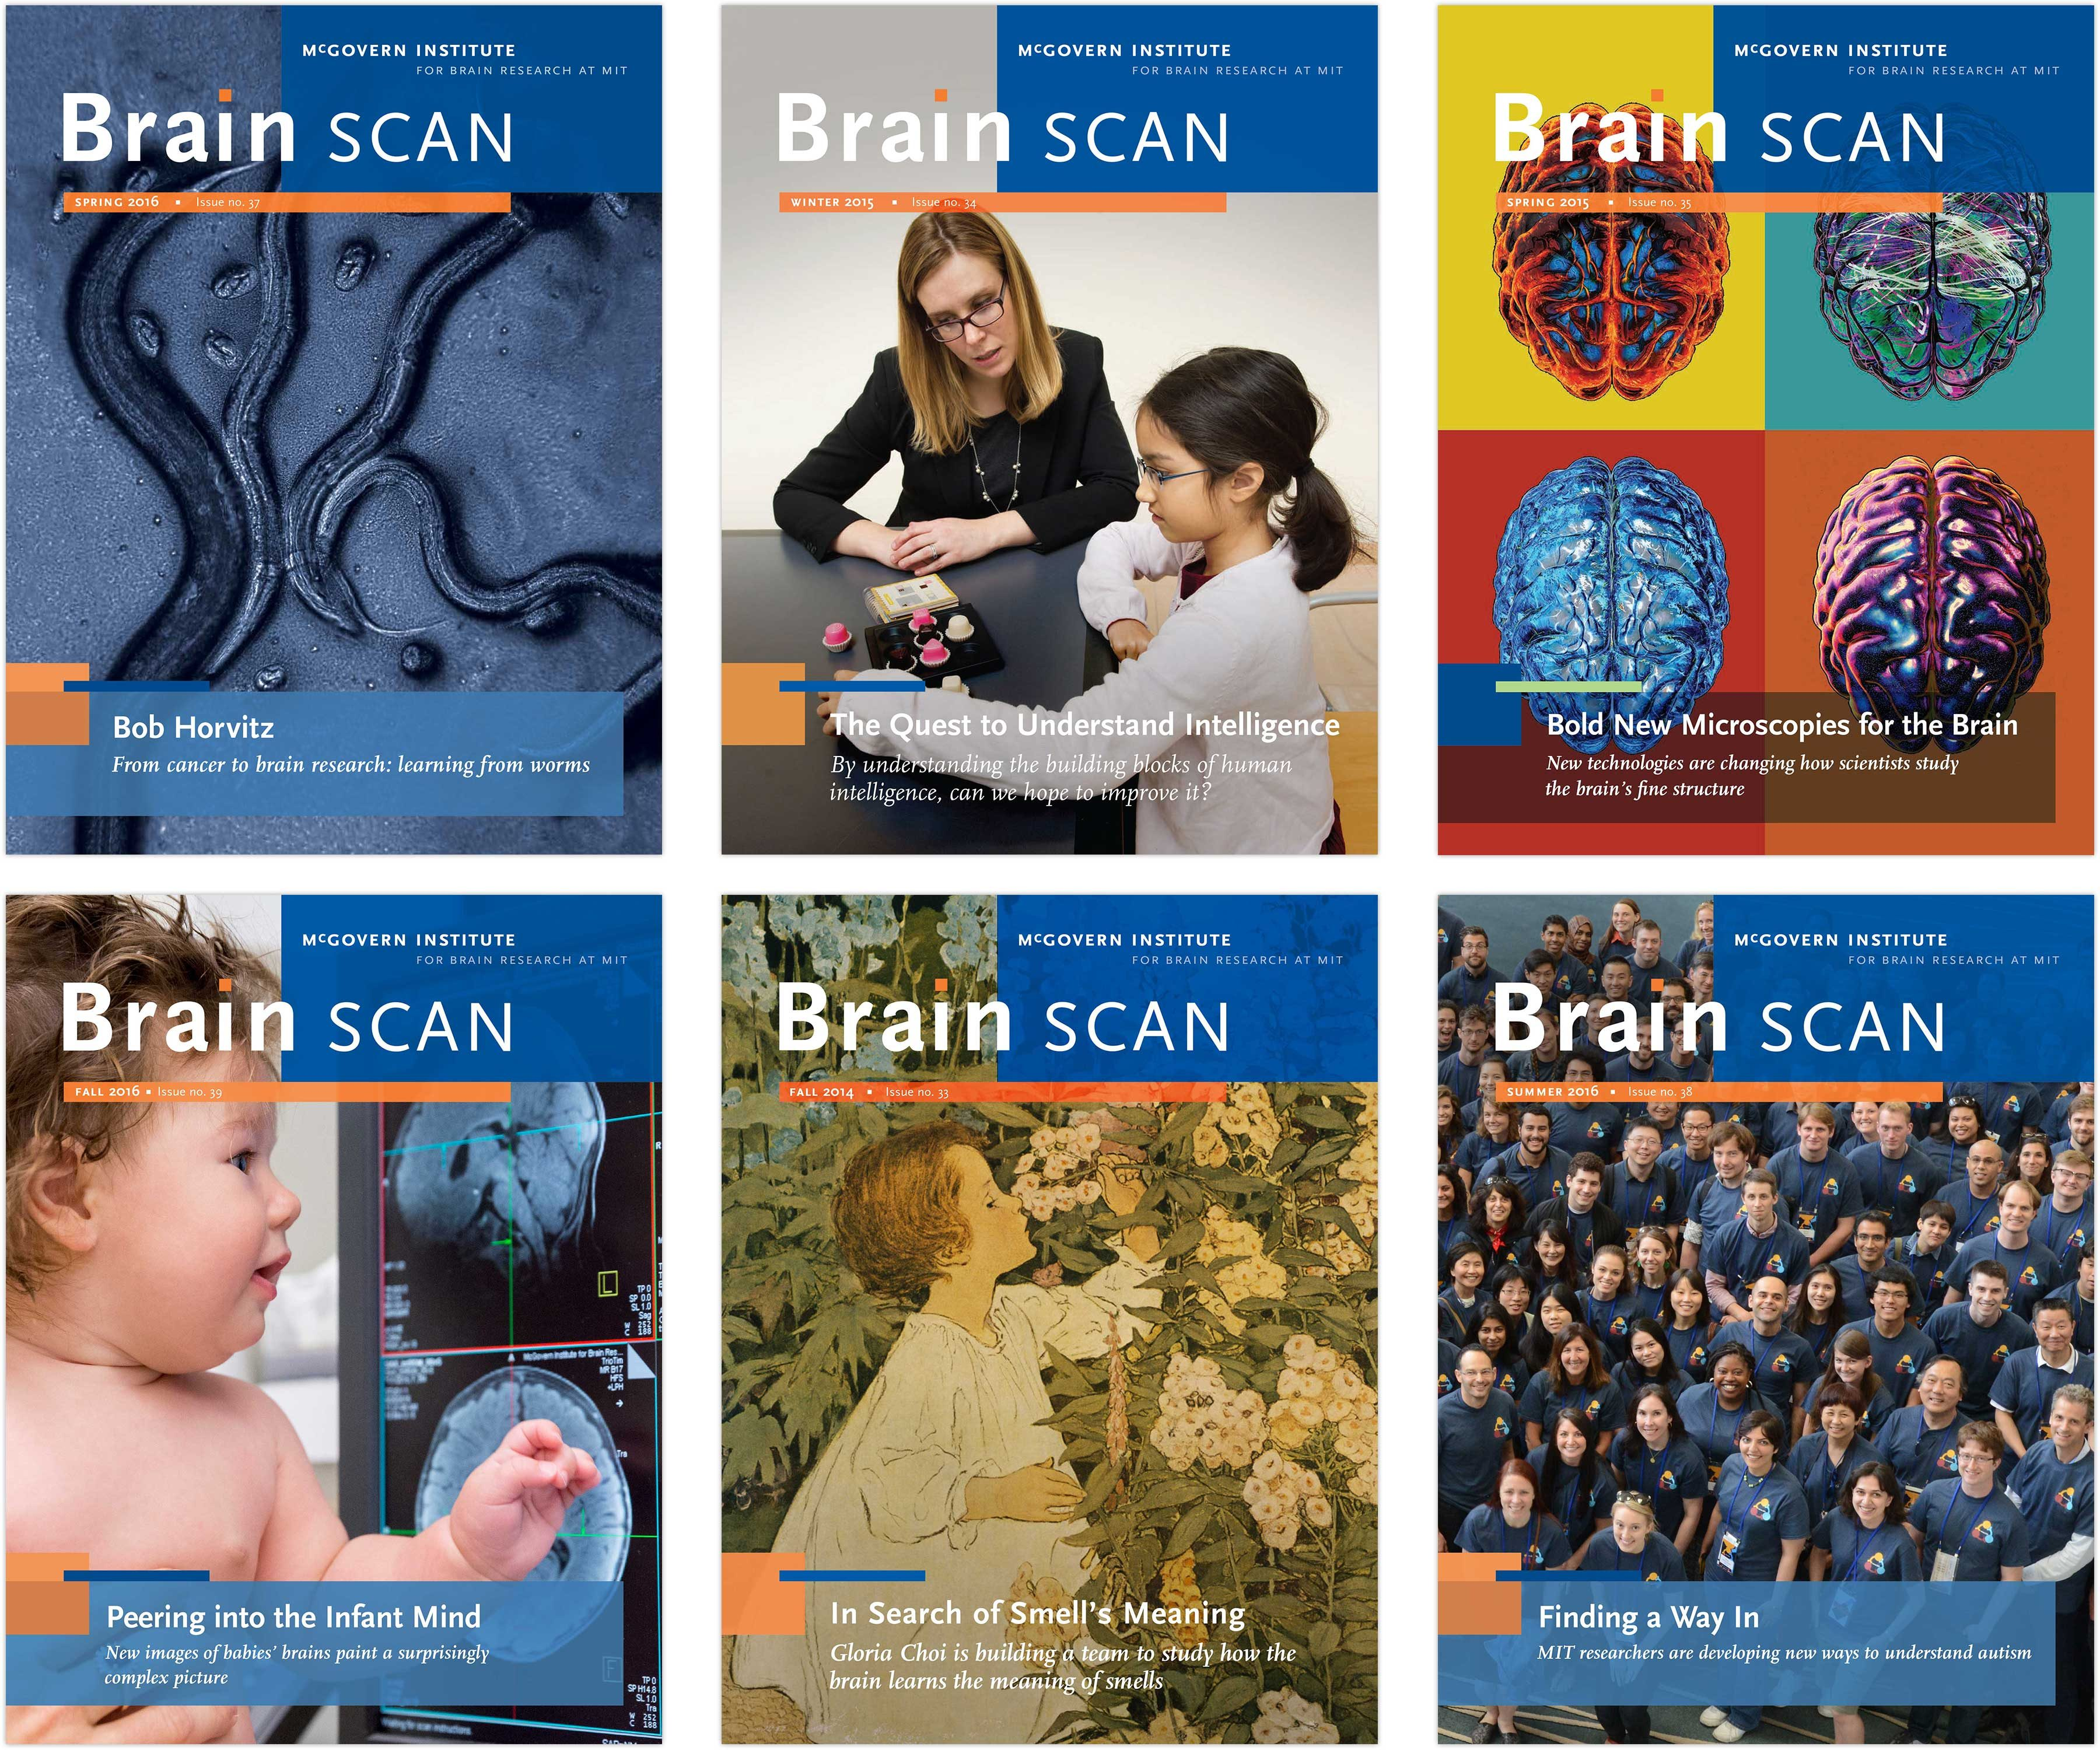 Brain Scan newsletter covers